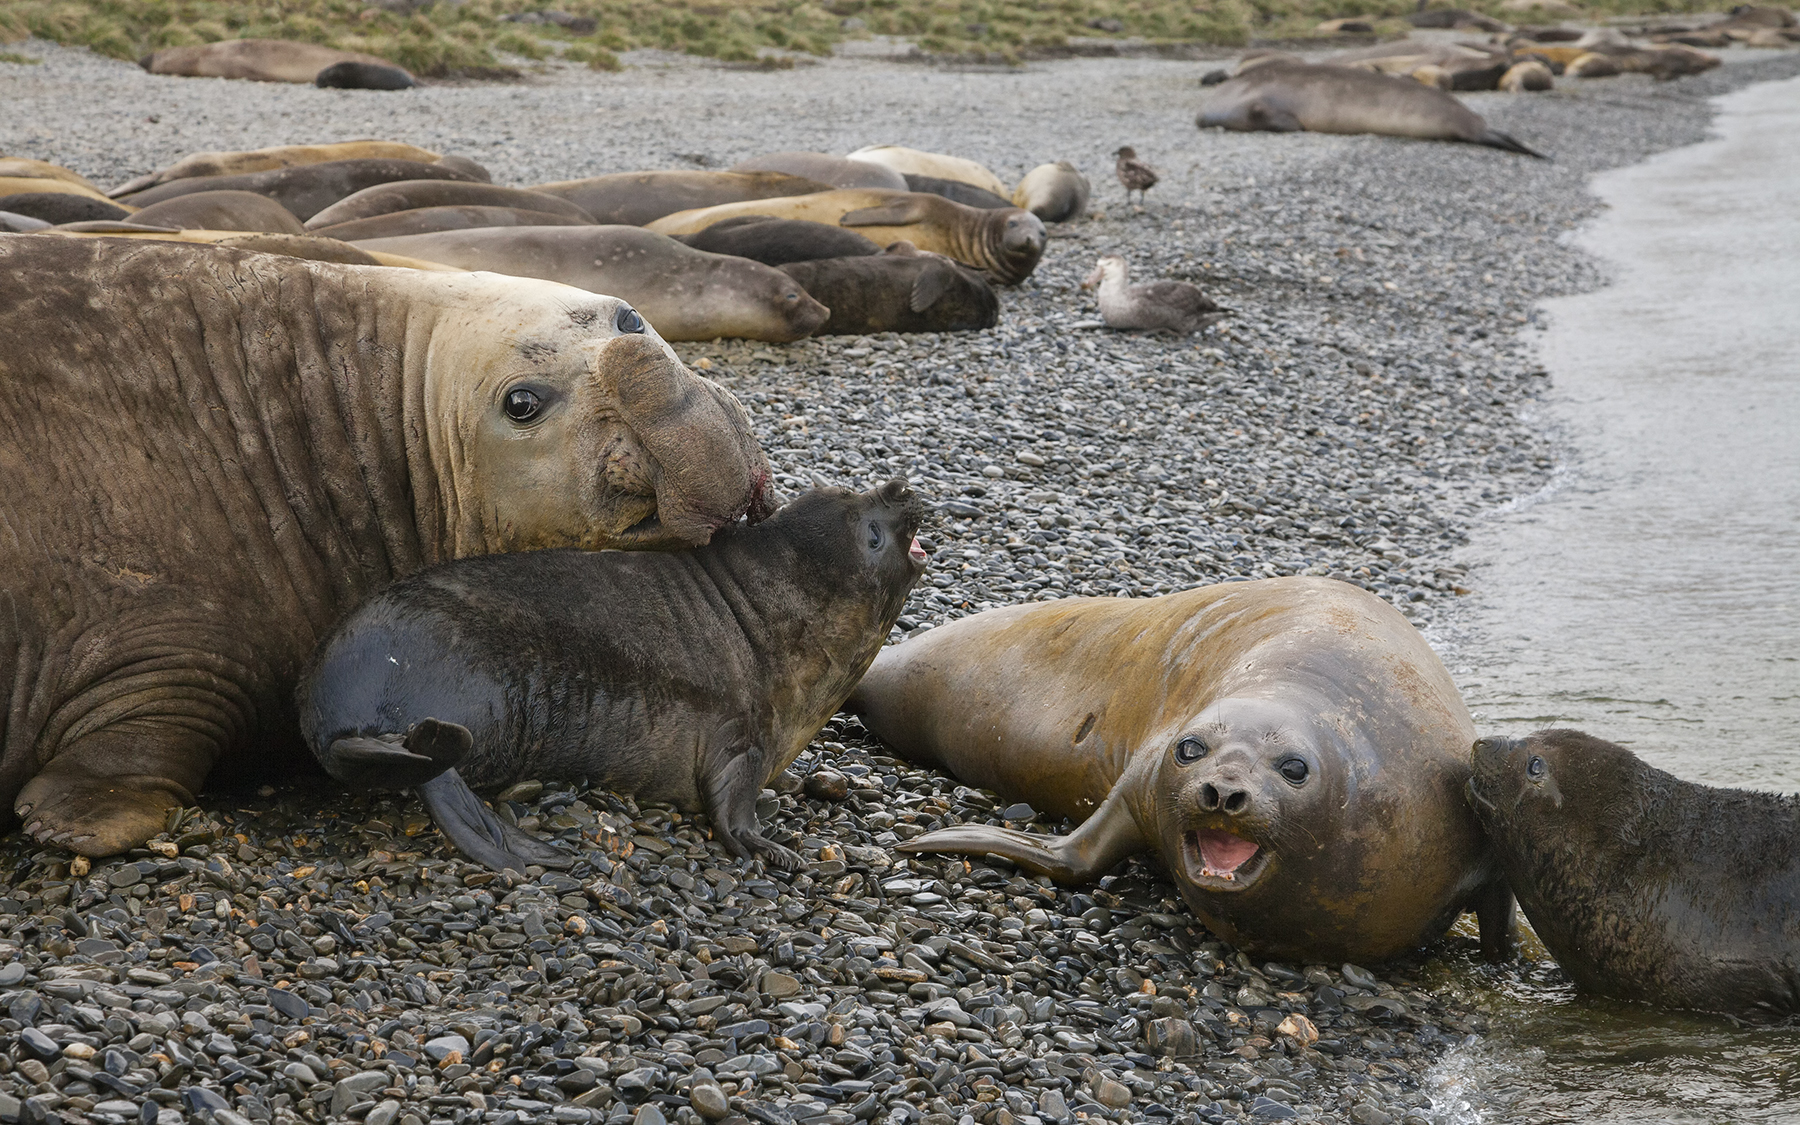 Brian_Jones_Elephant Seal Mating Season_Elephant Seals and Pups_2.jpg